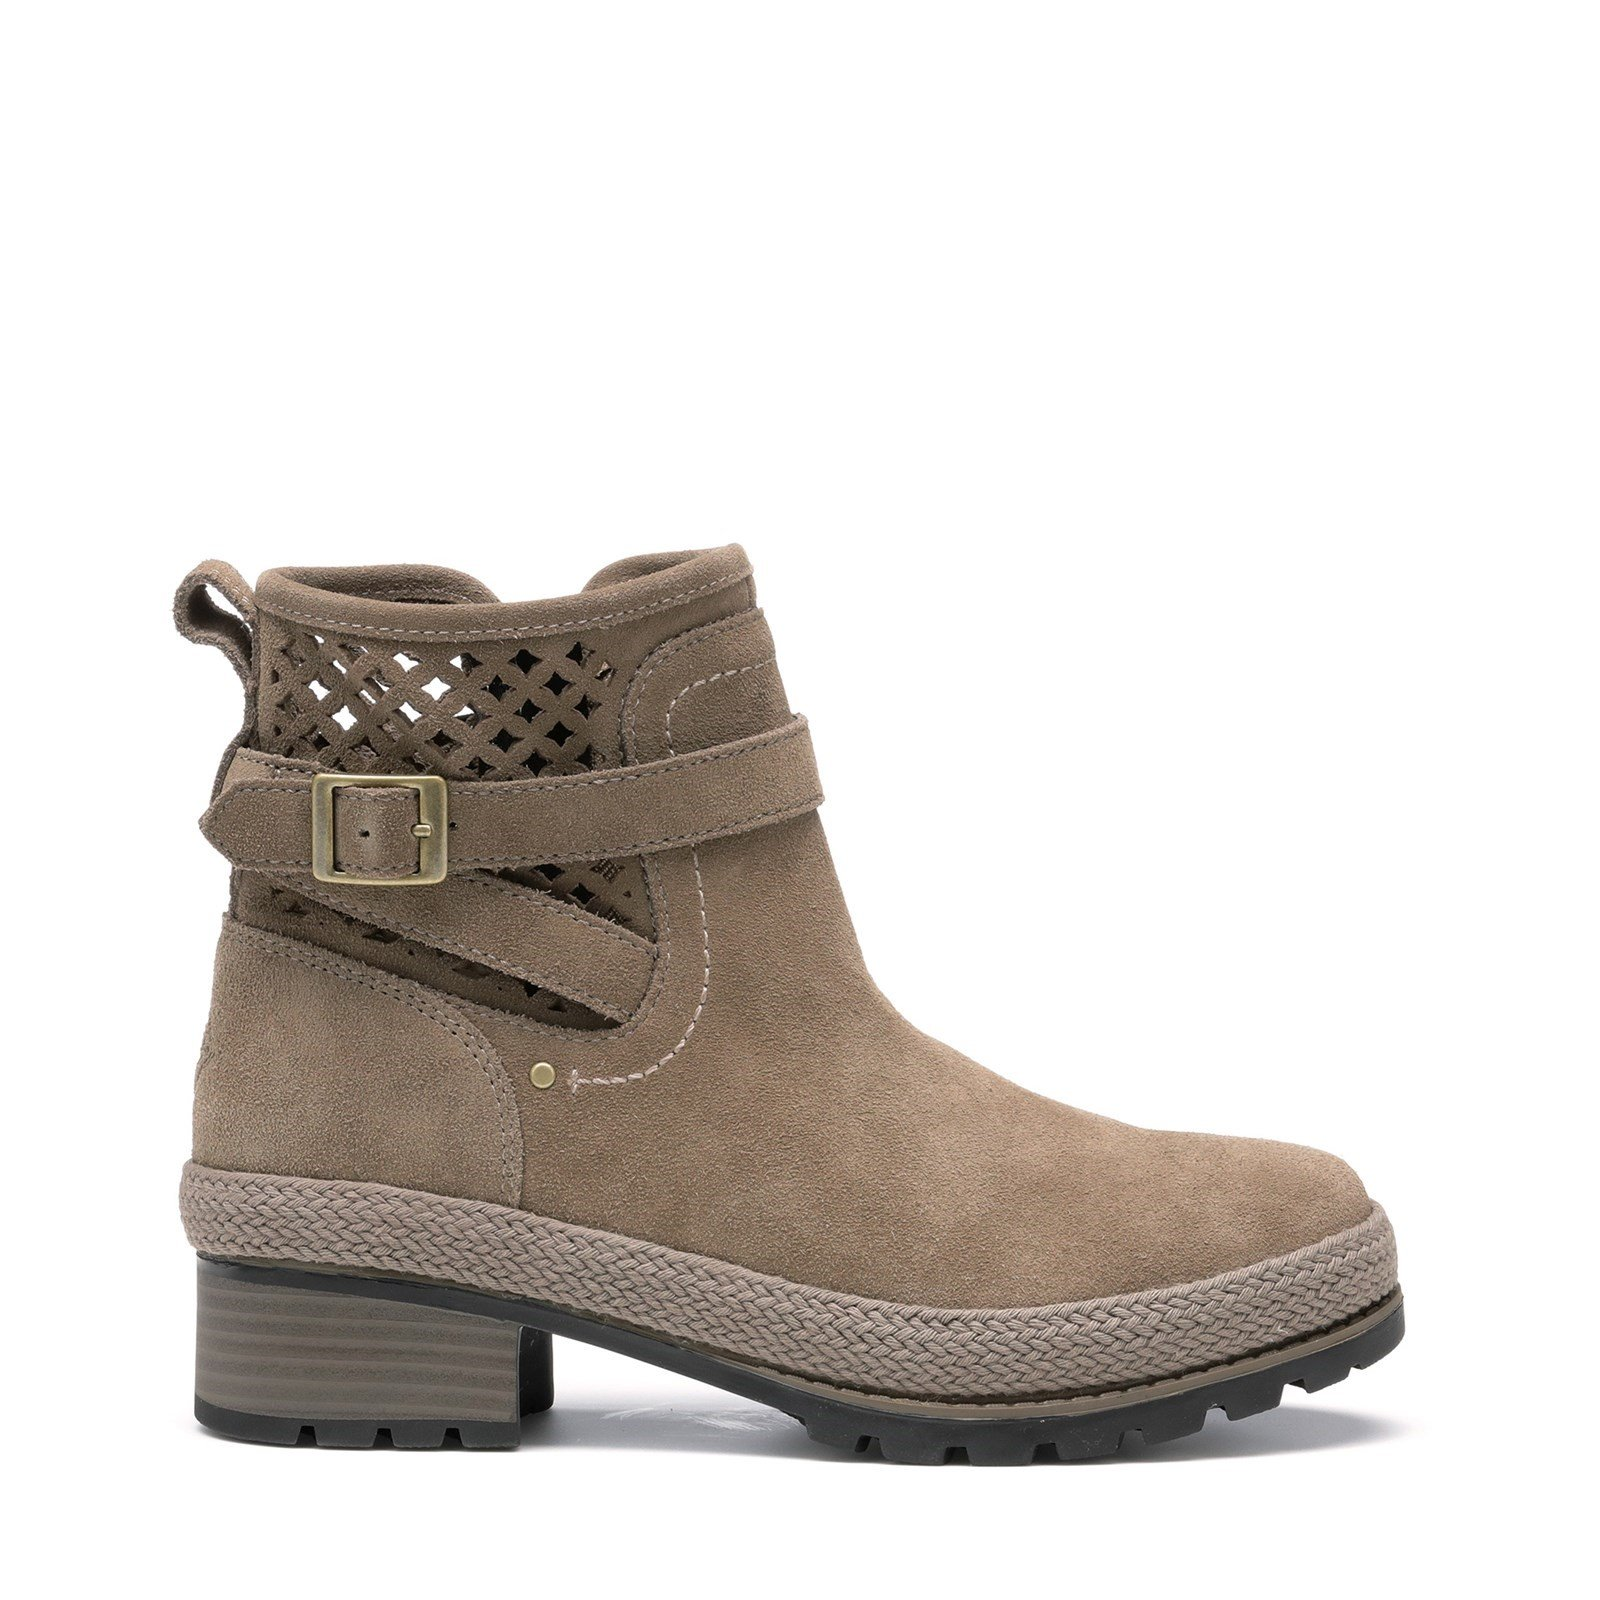 Muck Boots Women's Liberty Perforated Leather Boots Various Colours 31814 - Grey 3